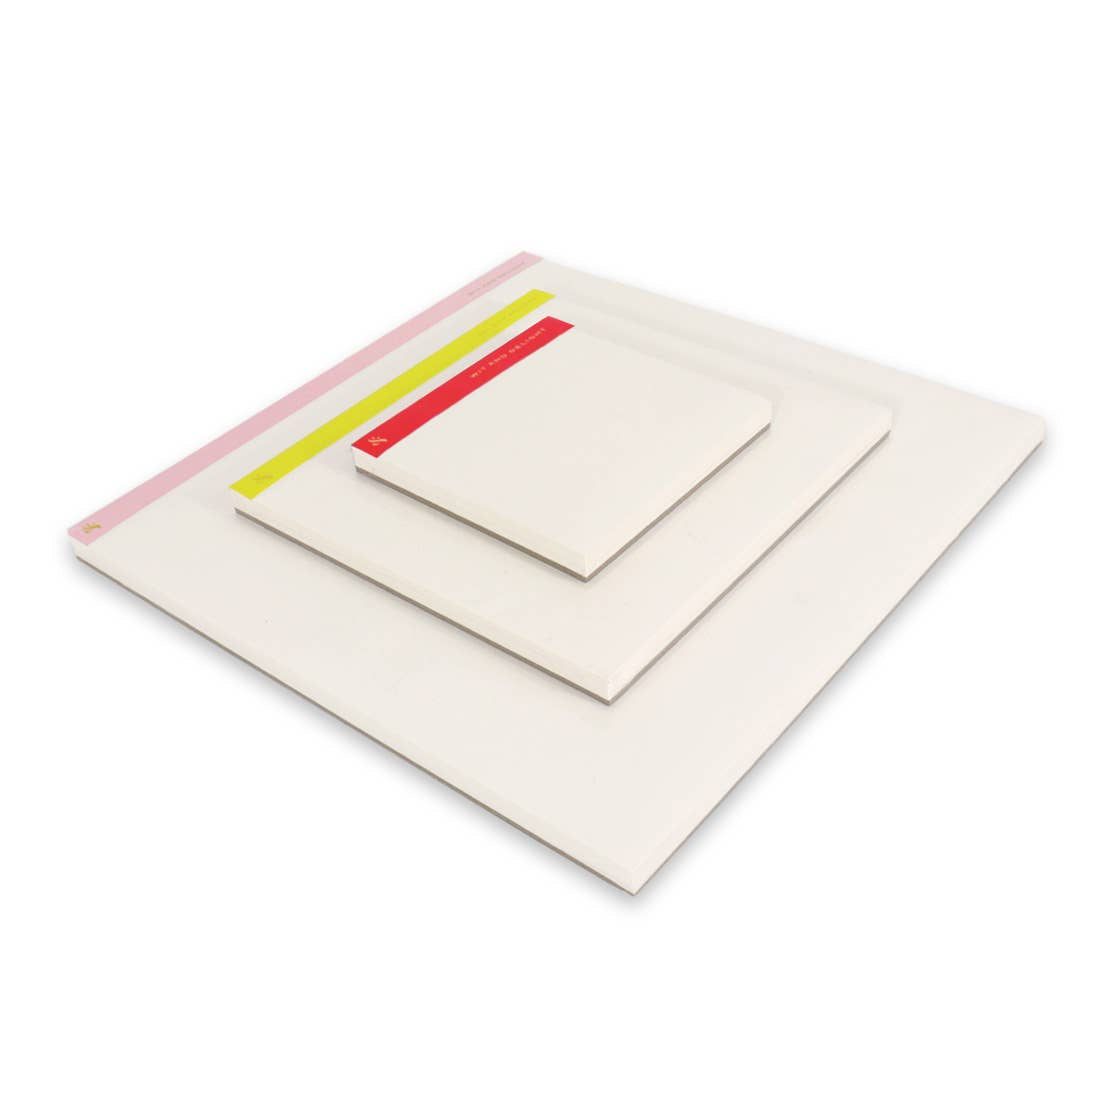 Desktop Notepad Set - Pink/Yellow/Red